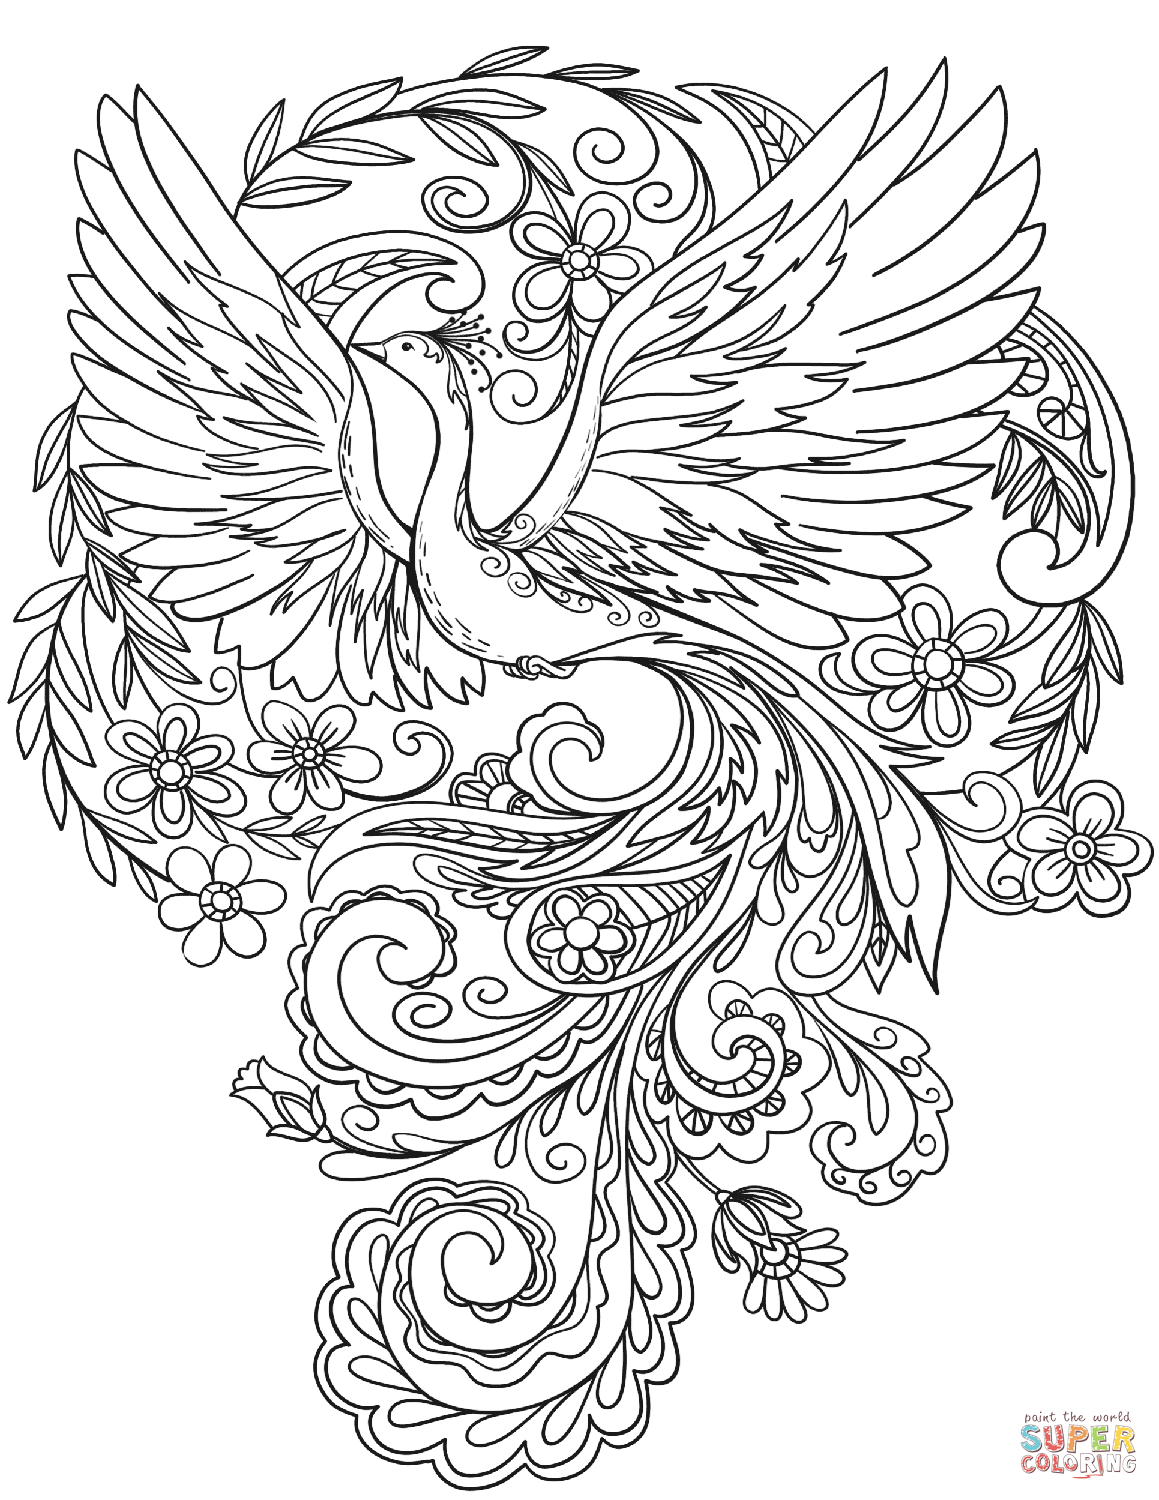 coloring pages of peacock peacocks to color for kids peacocks kids coloring pages pages of coloring peacock